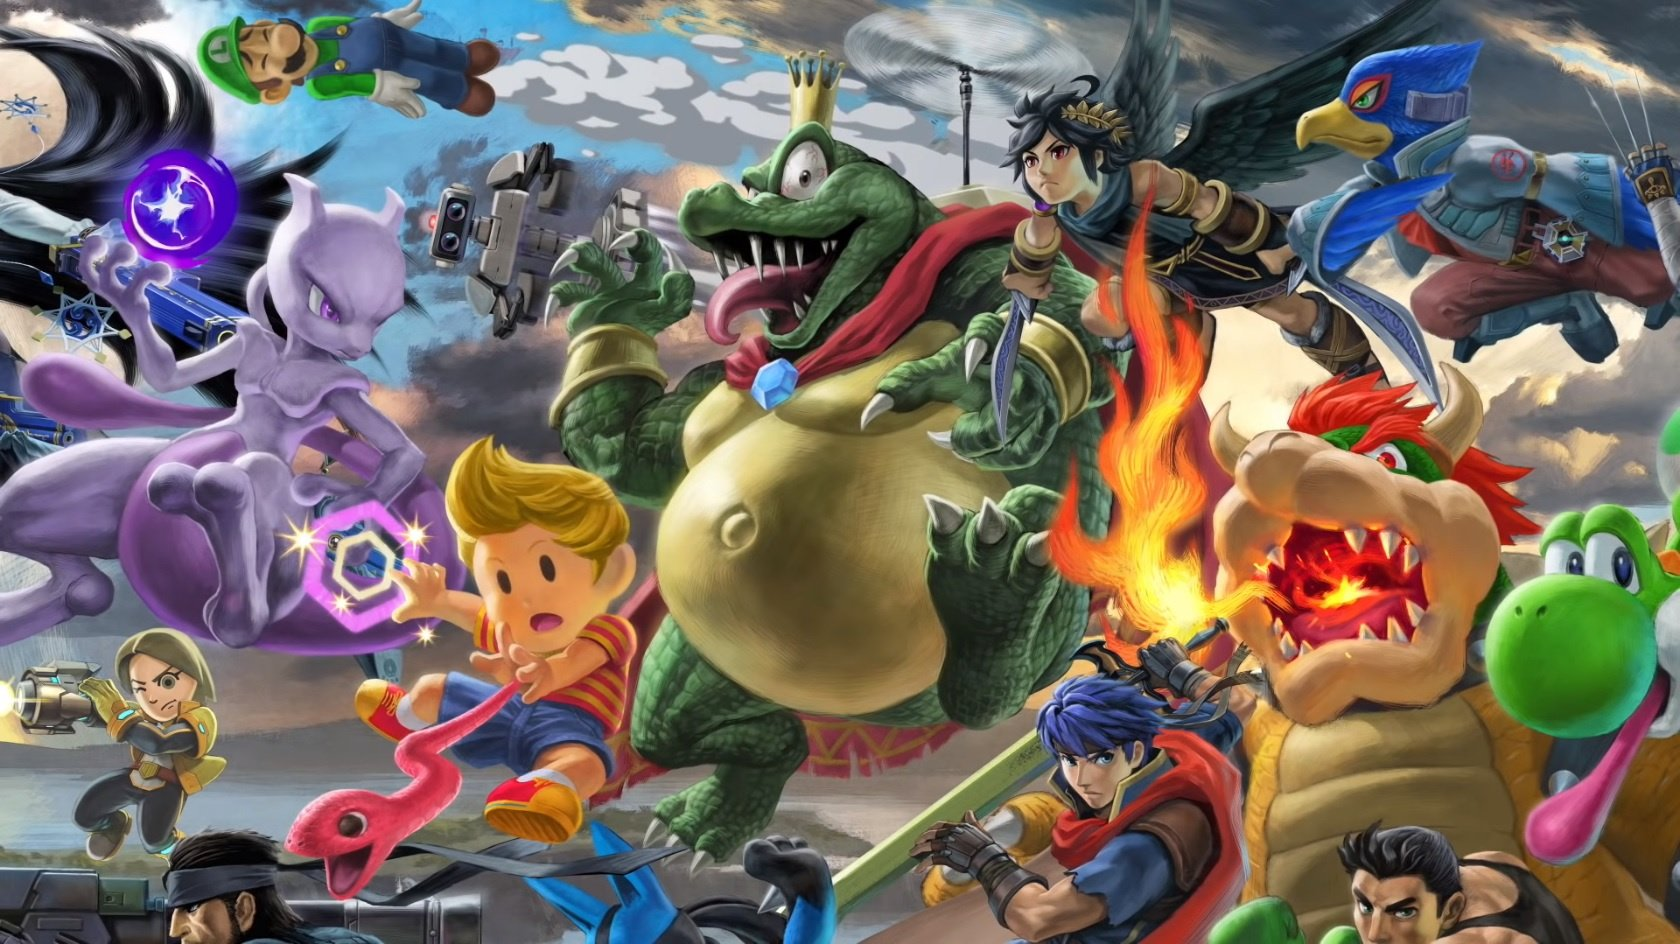 Rumour: Unannounced Characters For Super Smash Bros